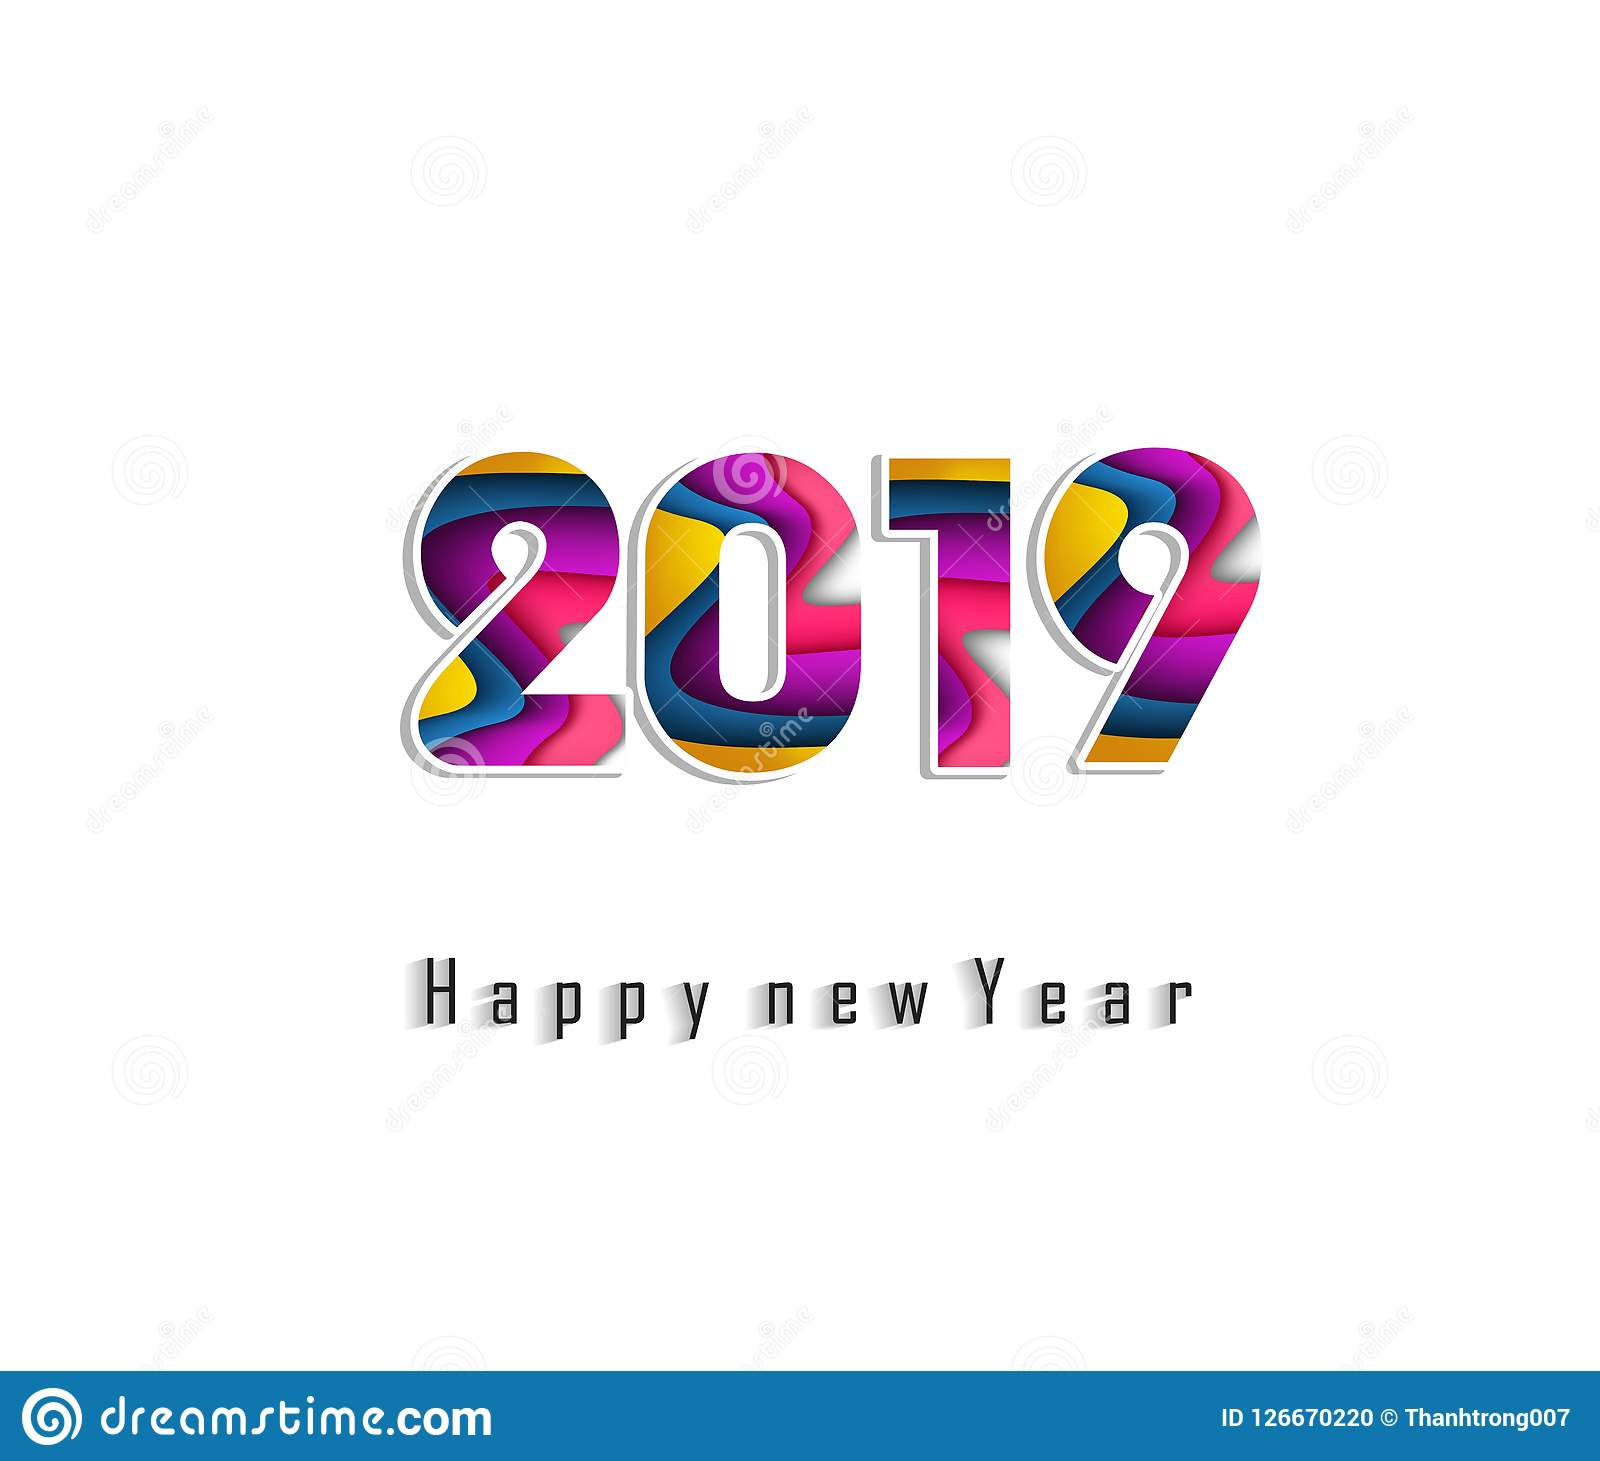 2019 Happy New Year Greeting Card. Vector Design Template ...